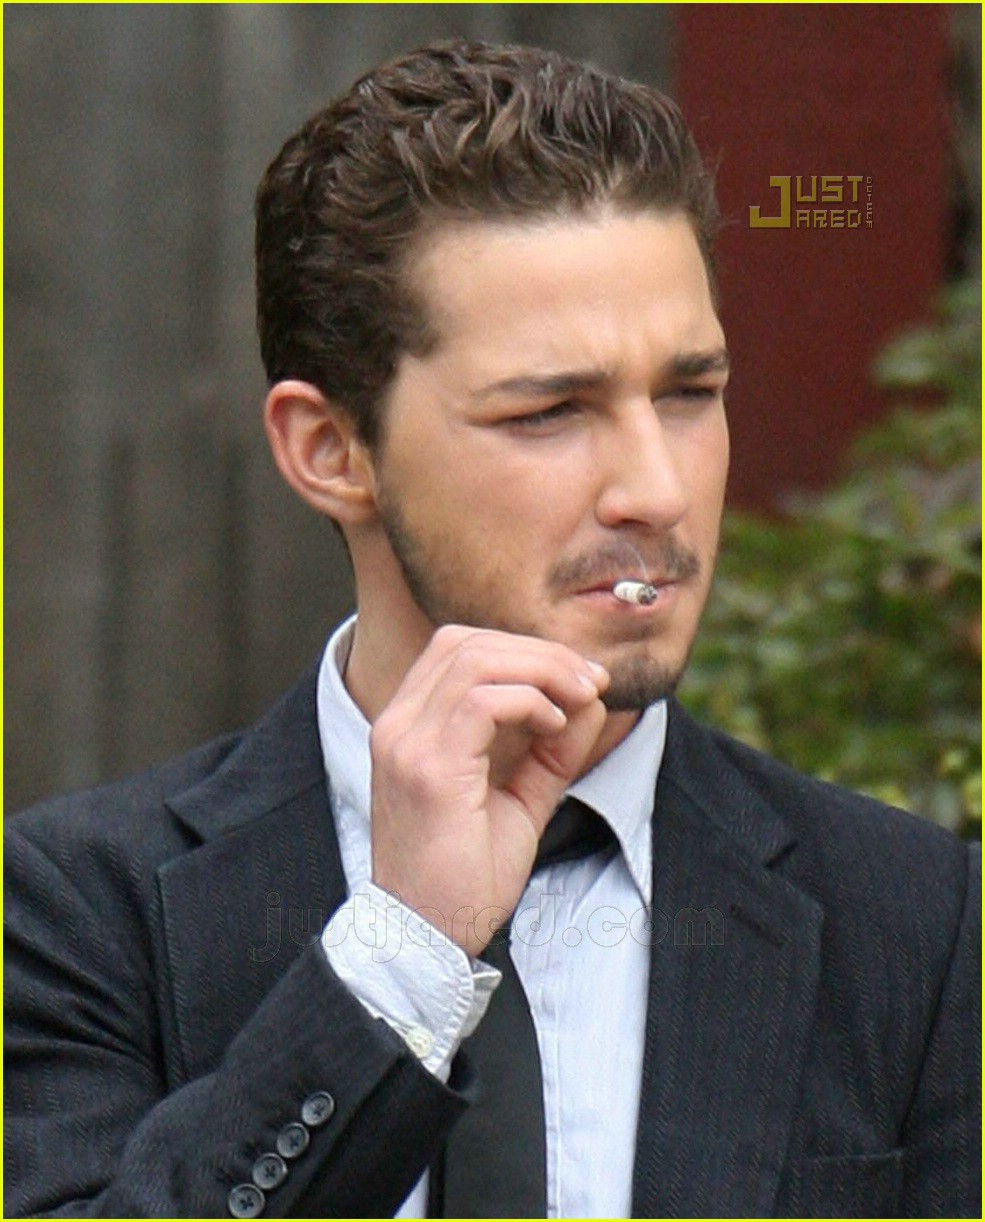 http://innerjoejoe.files.wordpress.com/2007/11/shia-labeouf-banana-break-05.jpg